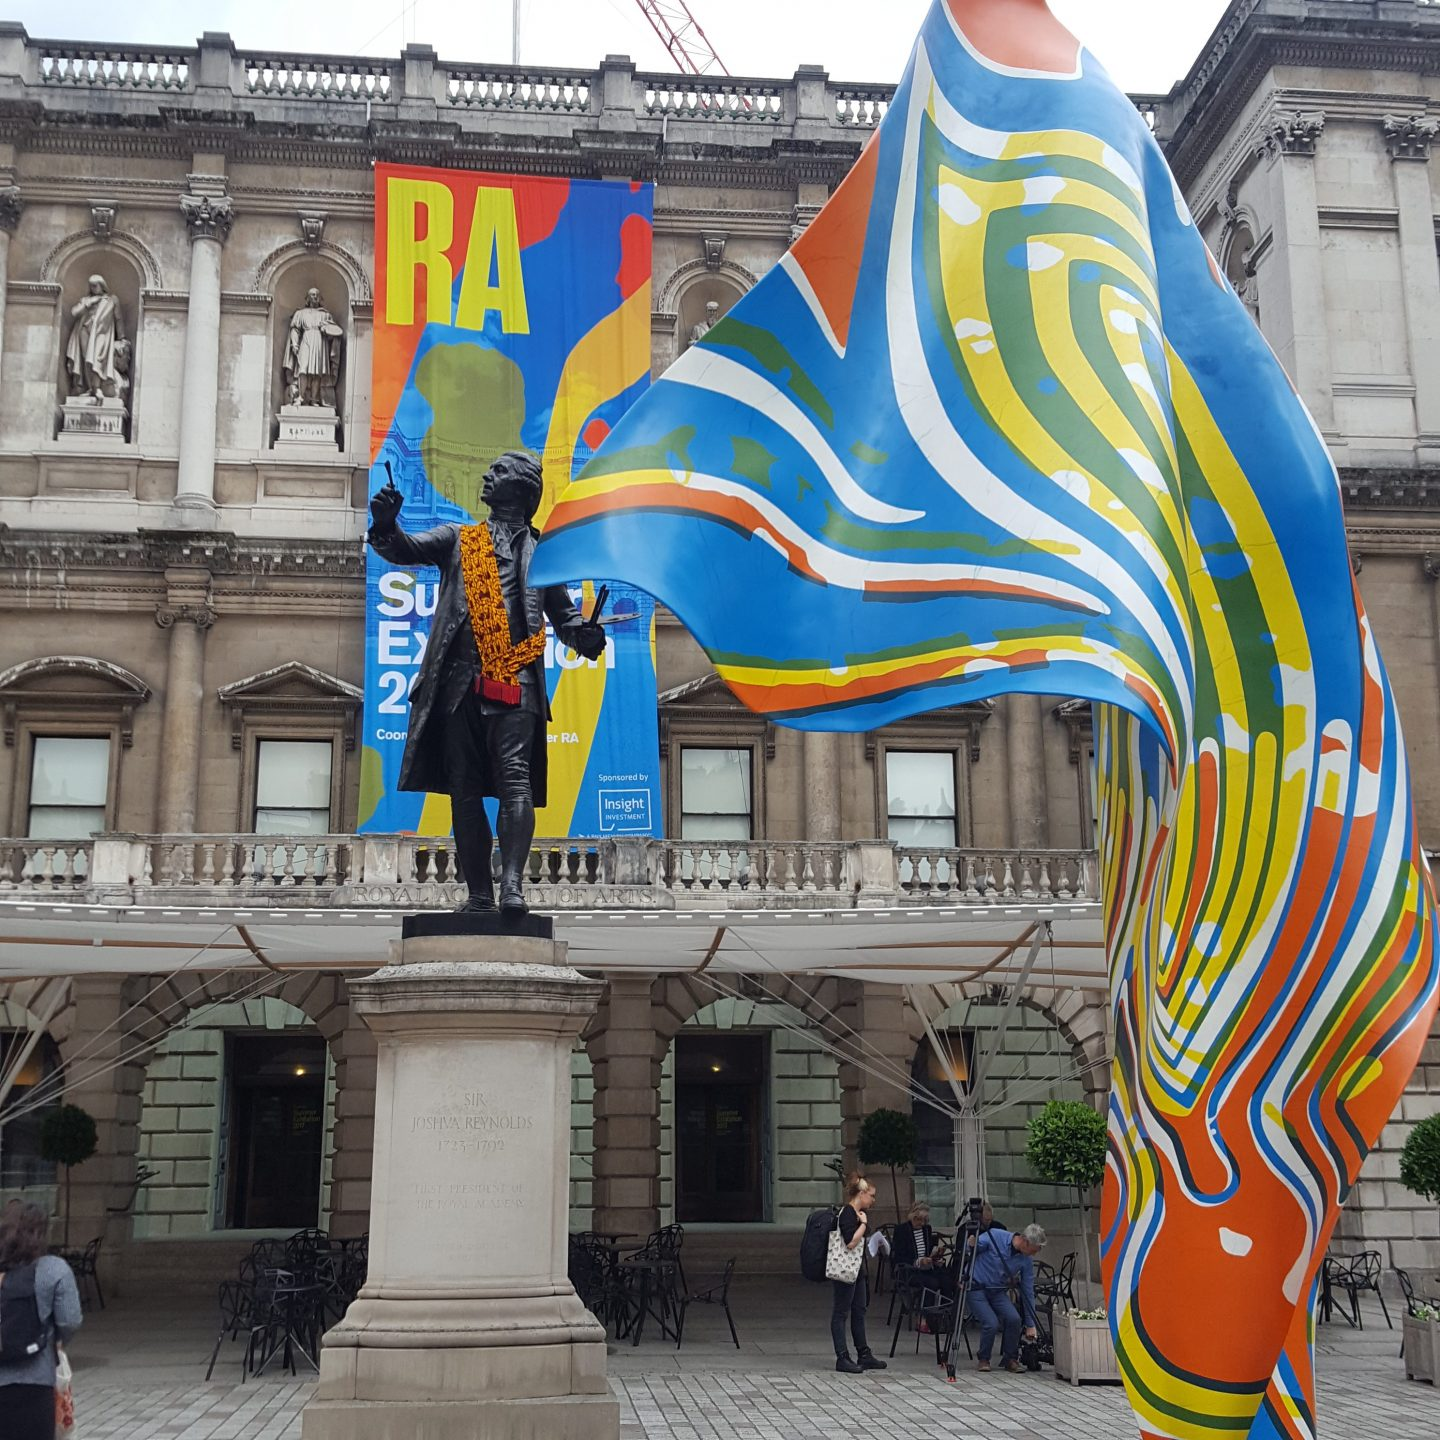 SUMMER EXHIBITION 2017 at the ROYAL ACADEMY